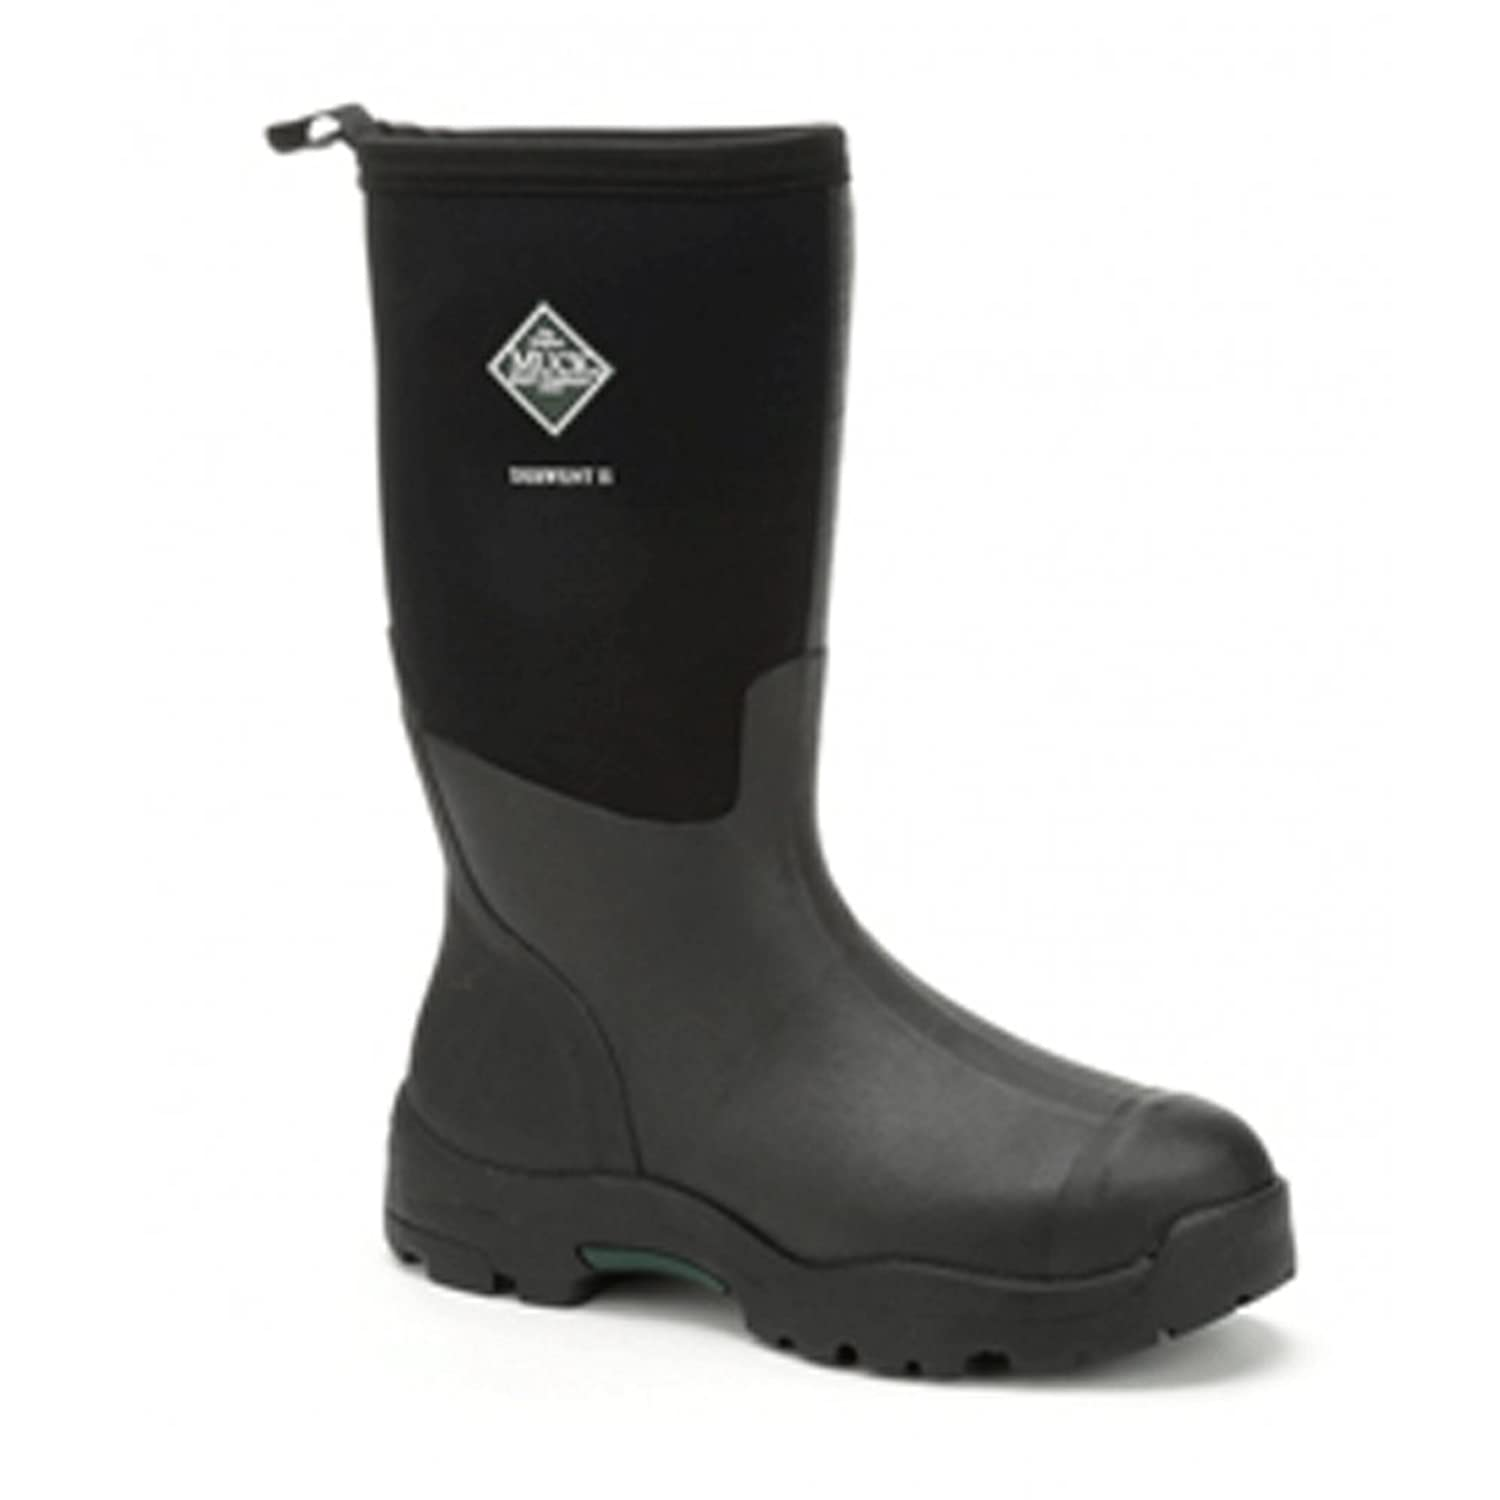 Muck Boots MuckMaster Neoprene Wellington Boot - Black or Moss ...